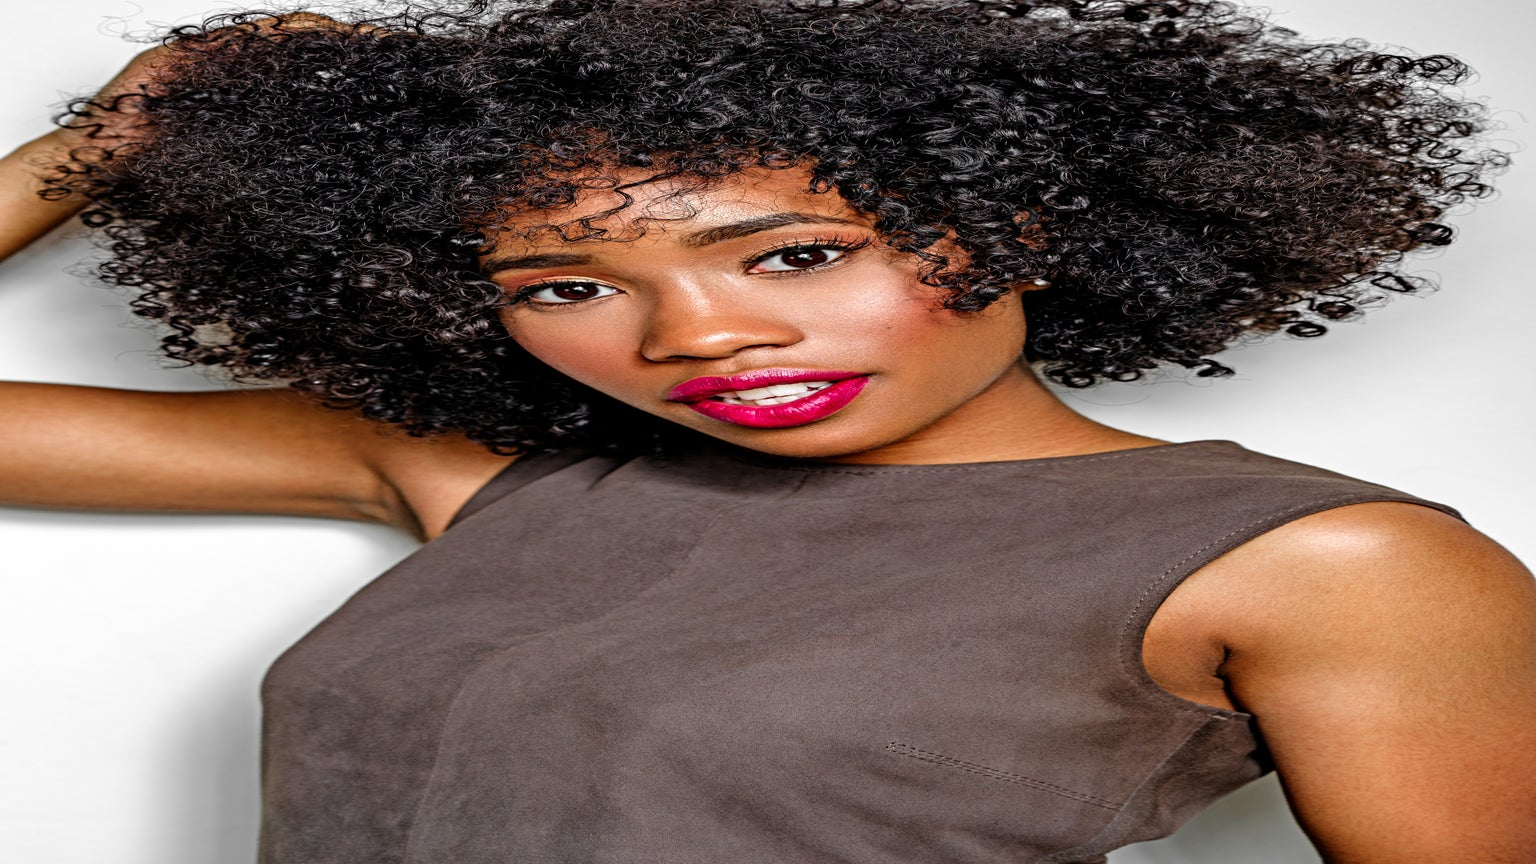 'The Quad' Actress Zoe Renee Opens Up About Her Love Of Acting And Being The Daughter Of A Music Icon